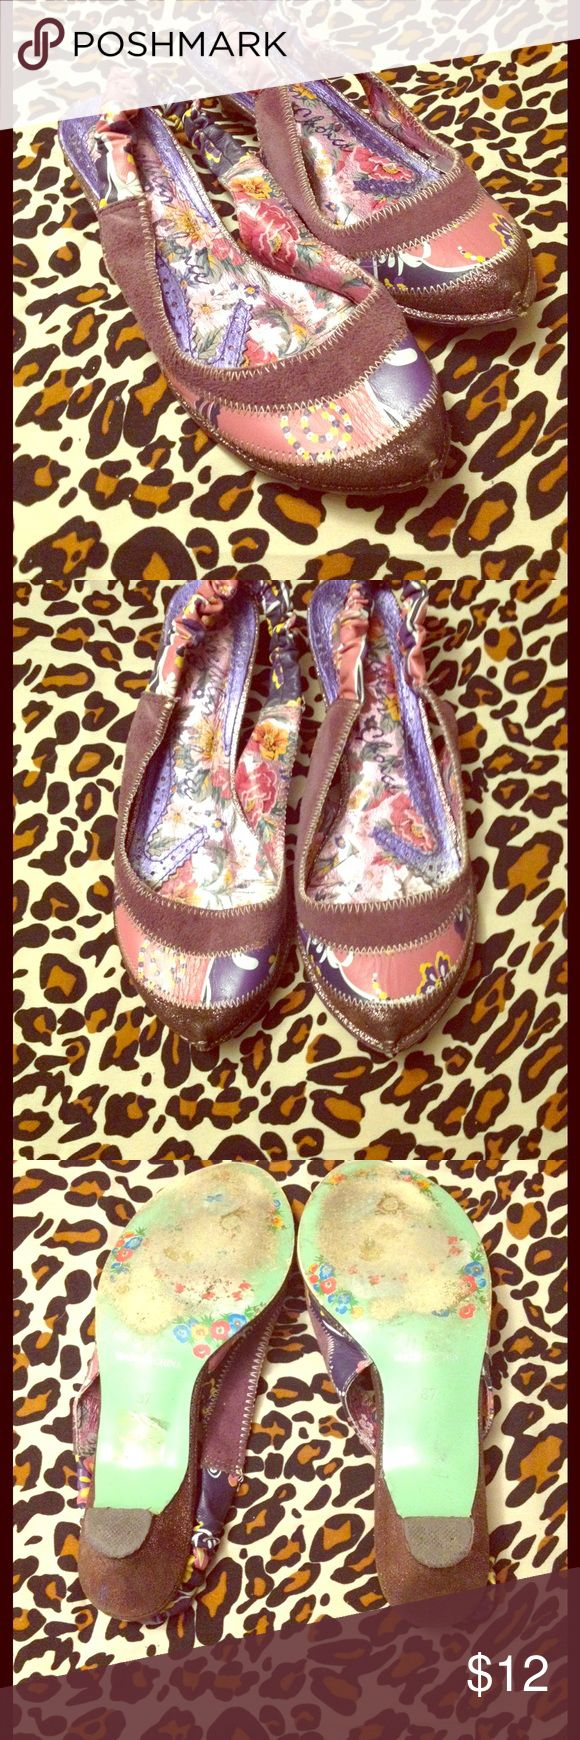 Irregular Choice Slingback Kitten Heels Size 7 Really awesome used condition - the only visible wear is on the soles! Leather & suede patchwork. EU size 37/ USA Size 7 Irregular Choice Shoes Heels